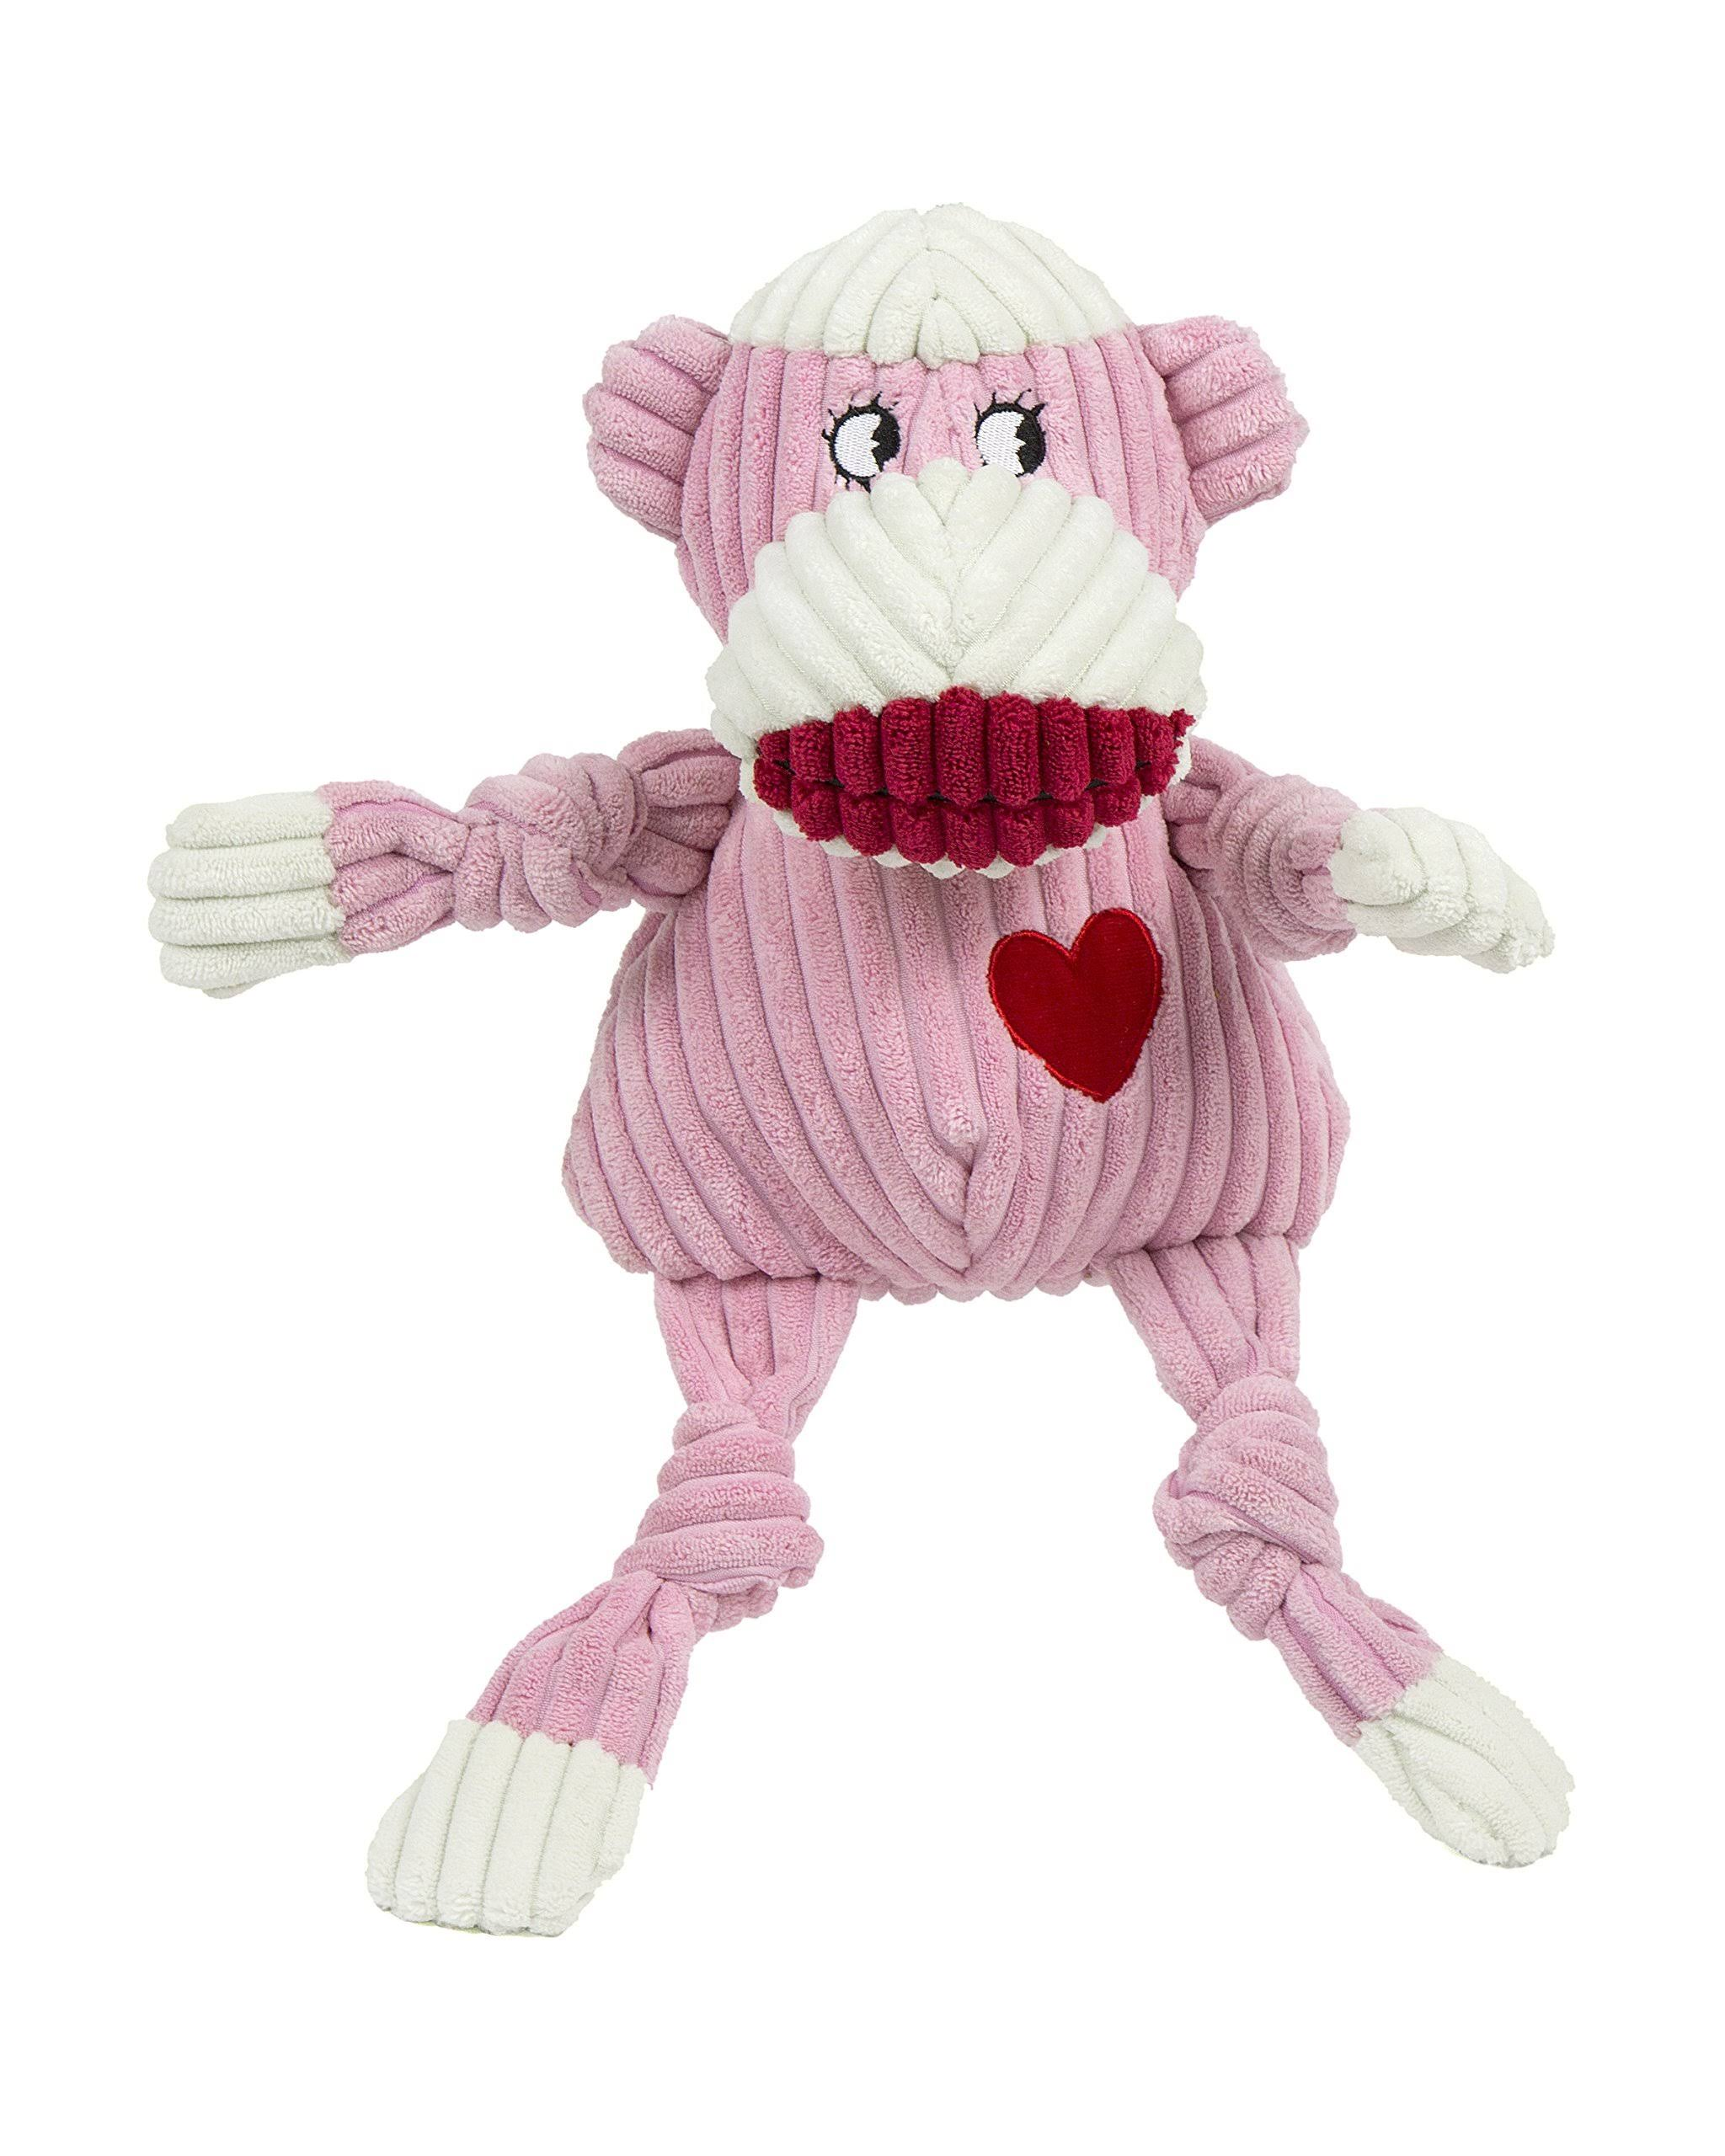 Hugglehounds Plush Durable Corduroy Ms. Sock Monkey Knottie - Large